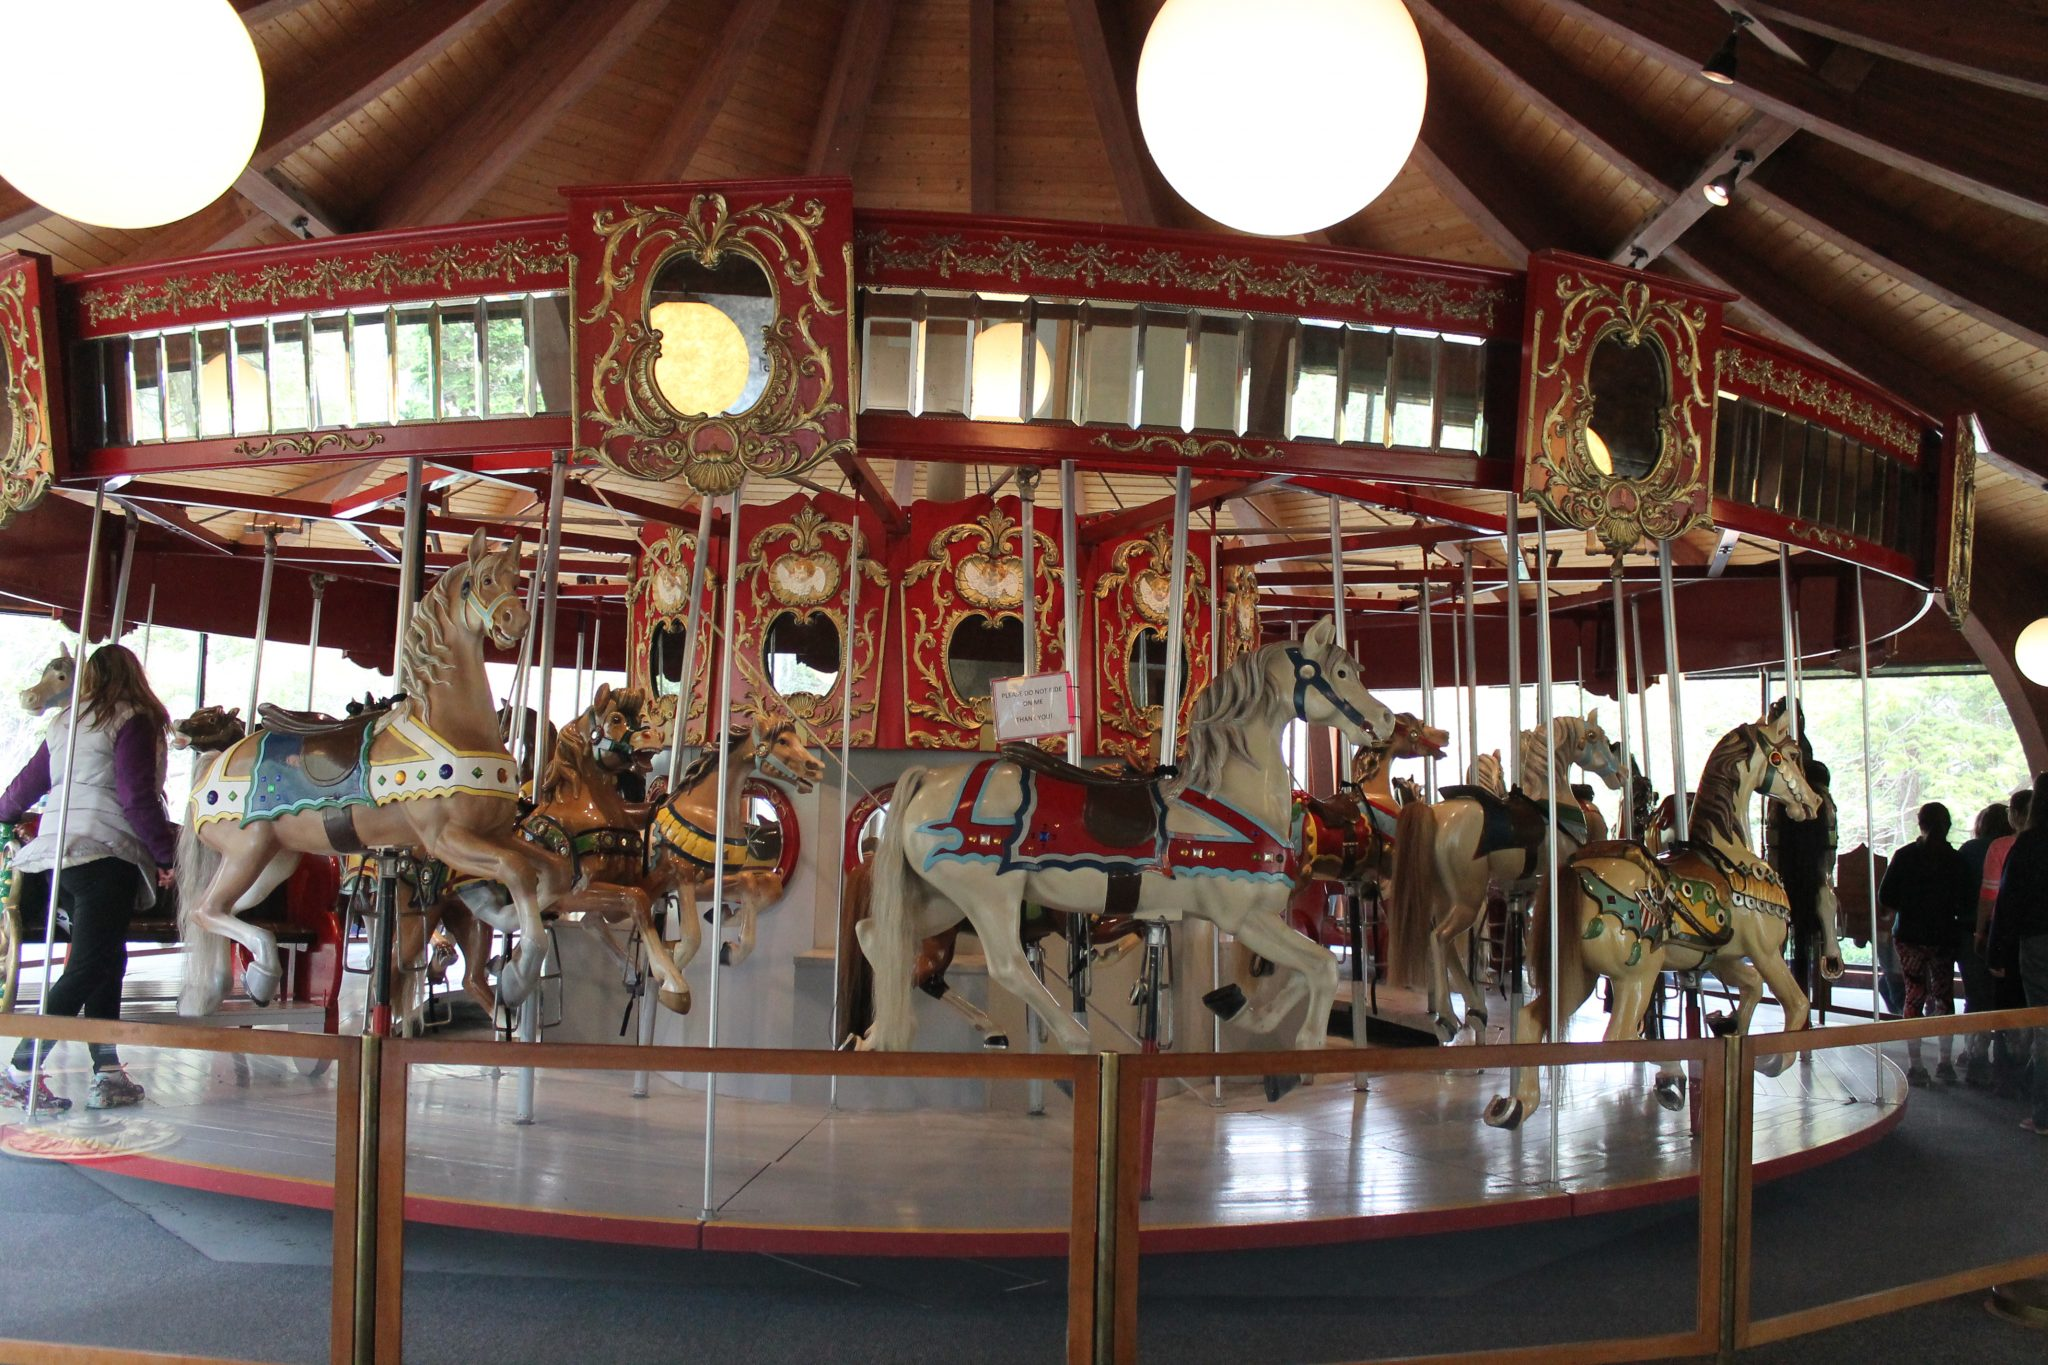 Charles Loof Wooden Merry Go Round